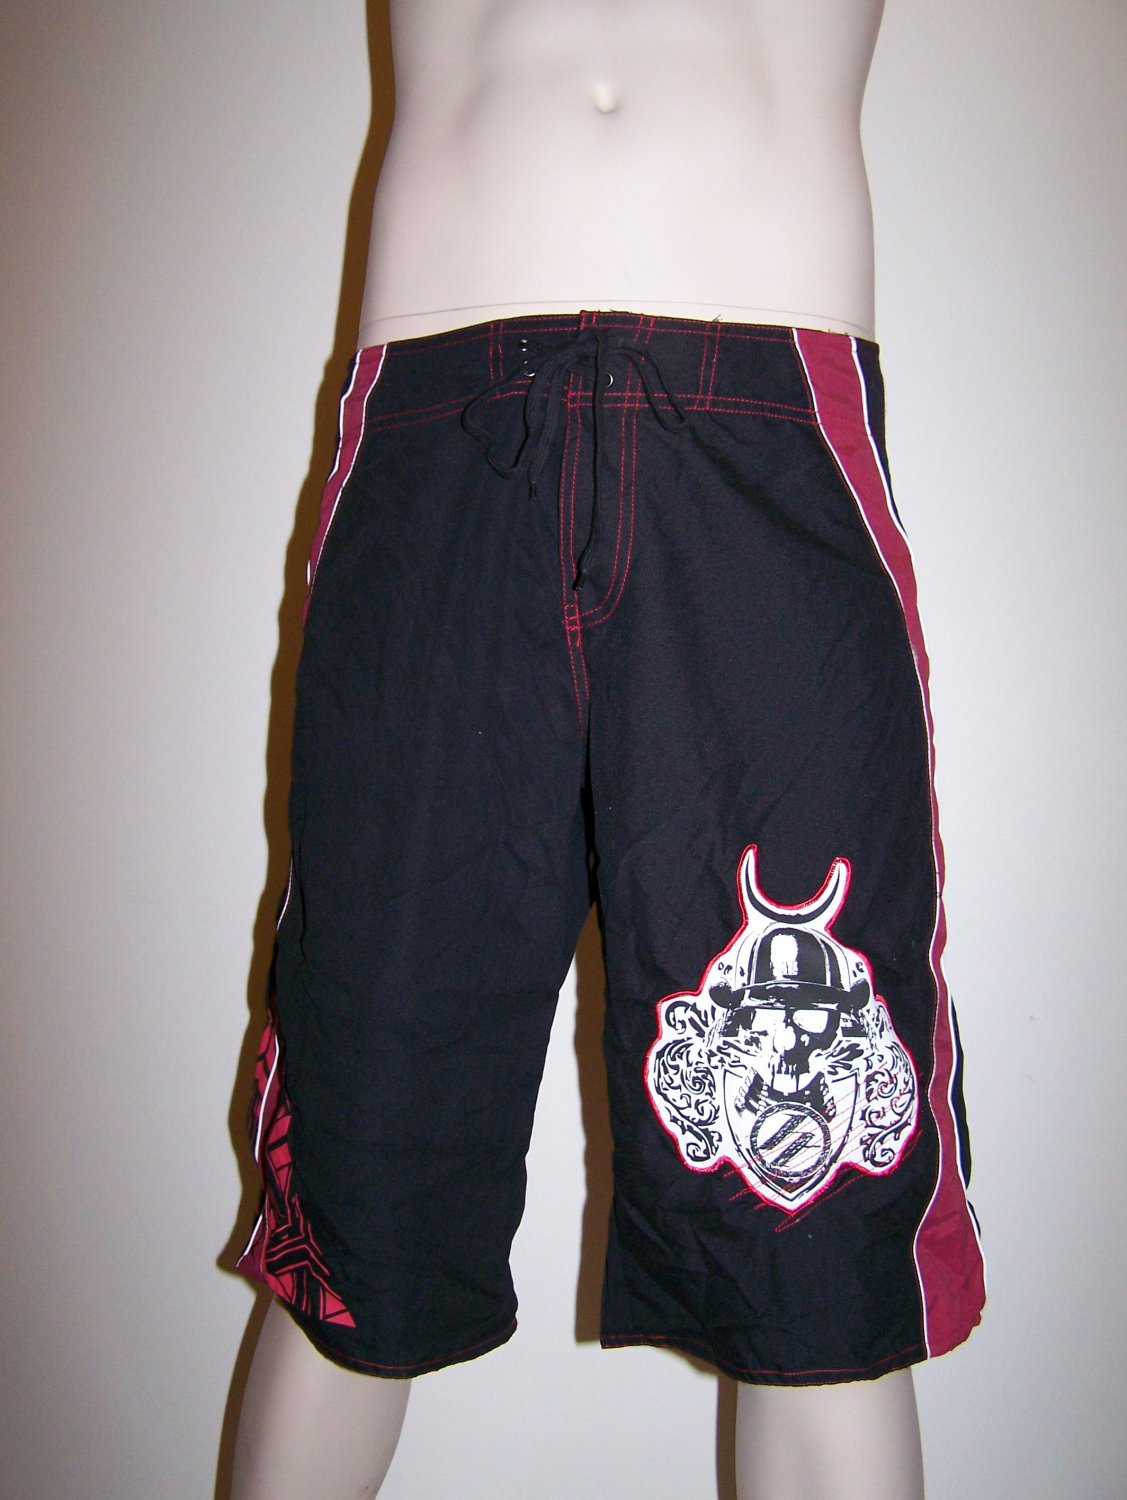 Hybrid Contract Killer - Fighting Shorts - Tophat Skull - XXL